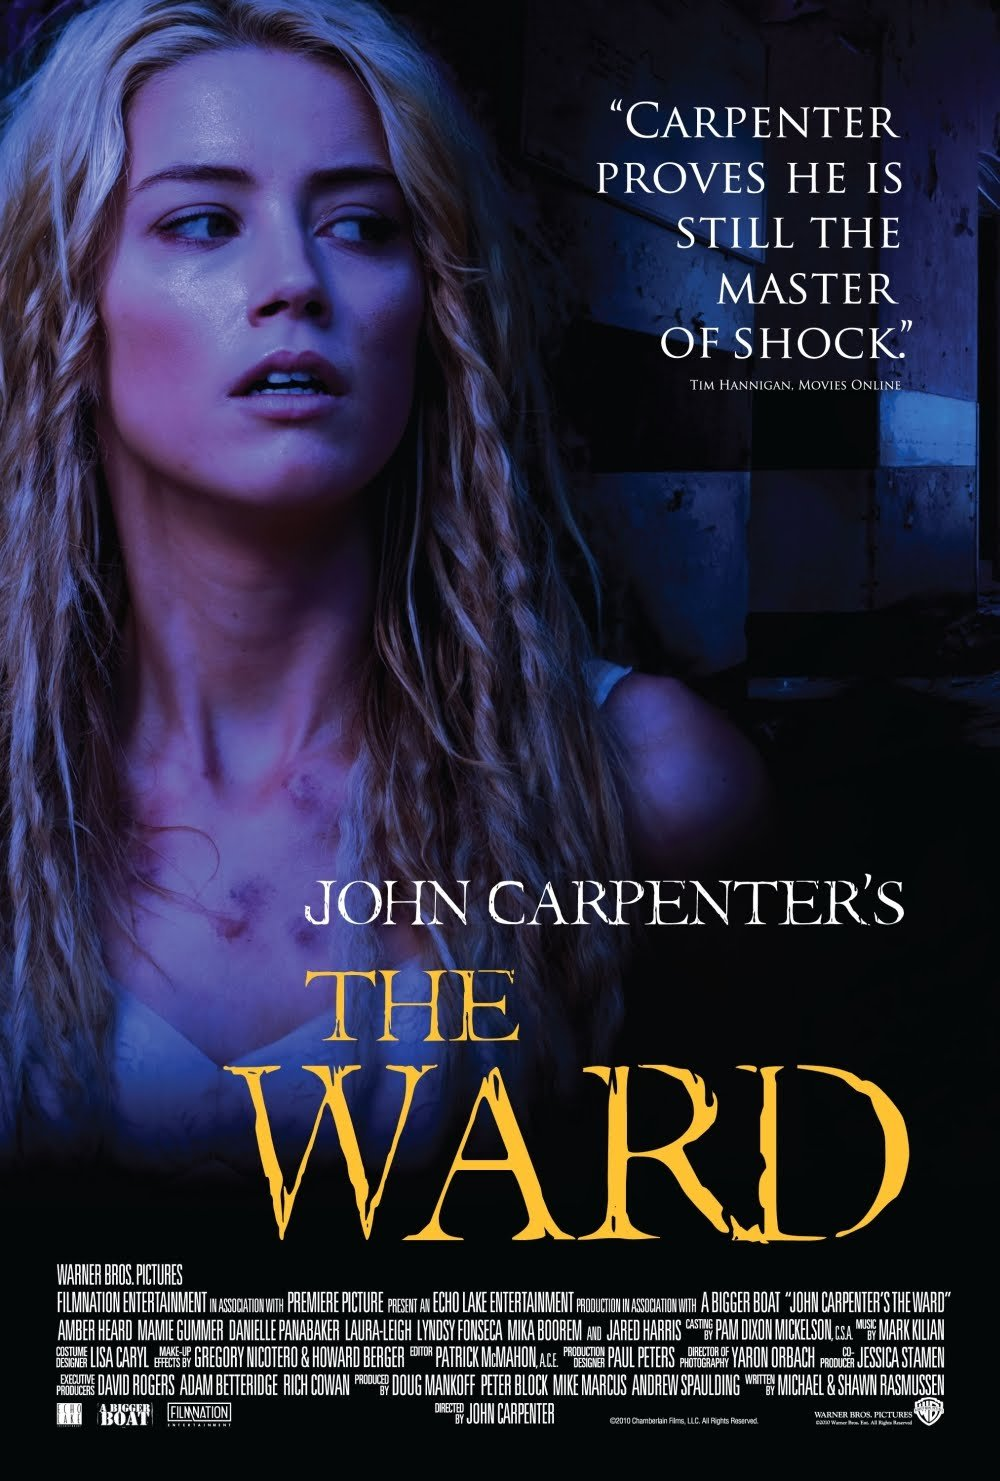 The Ward - John Carpenter